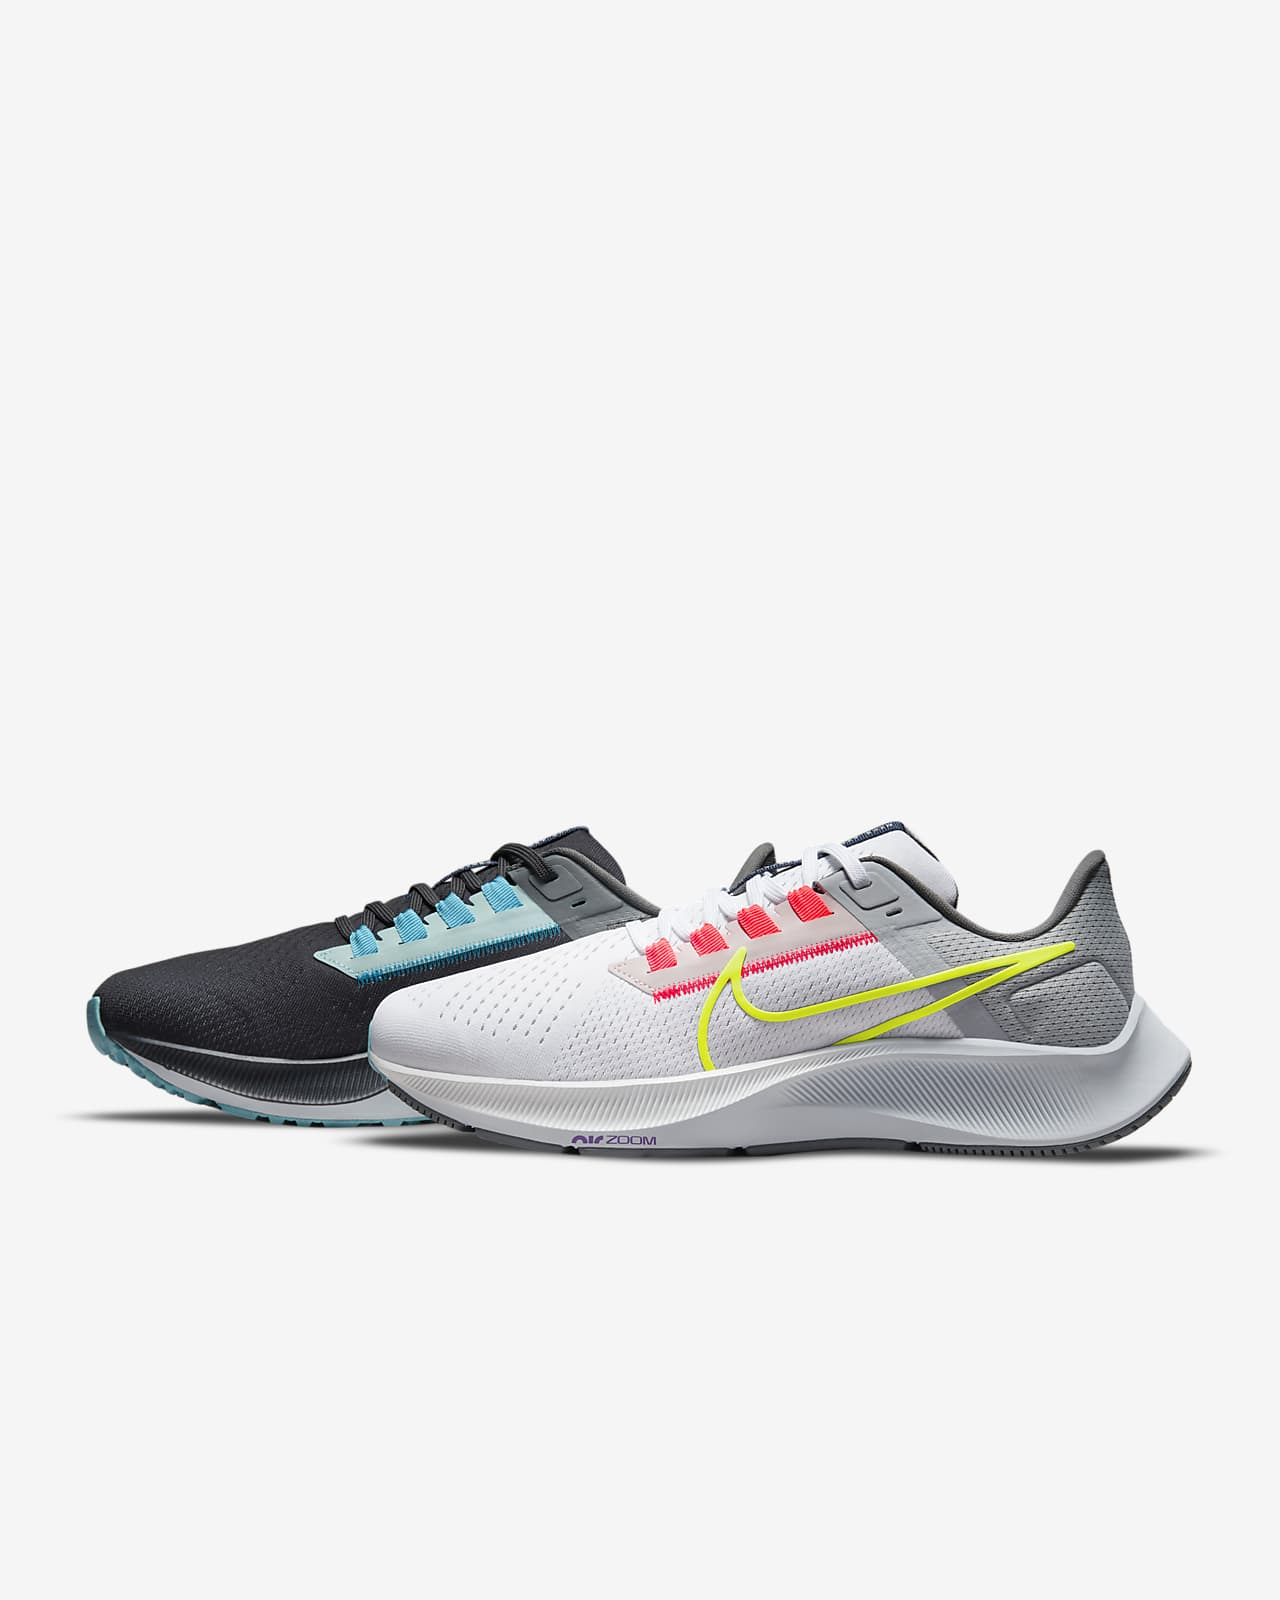 Nike Air Zoom Pegasus 38 Limited Edition Women's Running Shoes